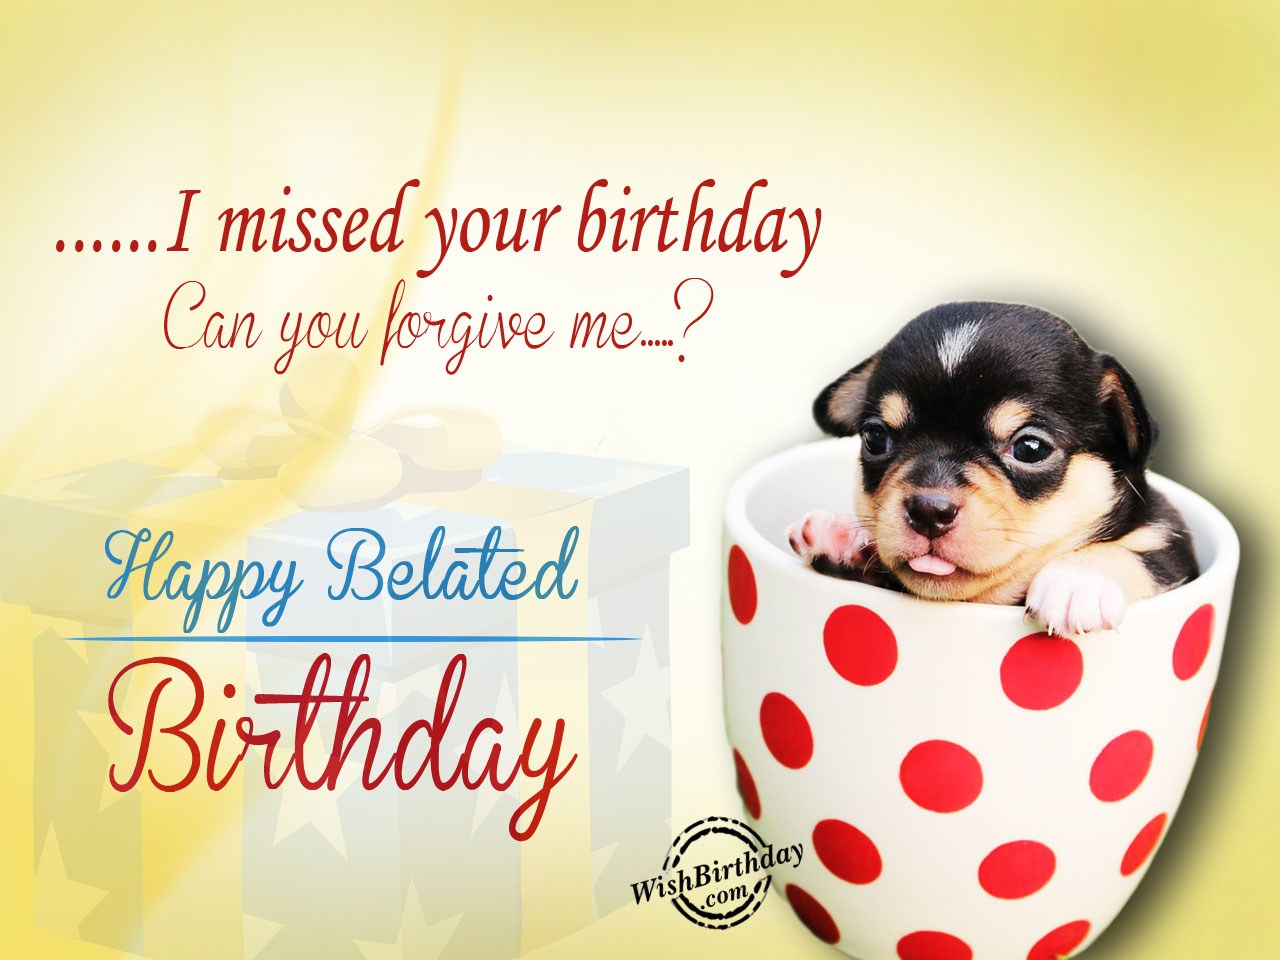 Belated Happy Birthday Wishes Birthday Images Pictures – Late Birthday Greeting